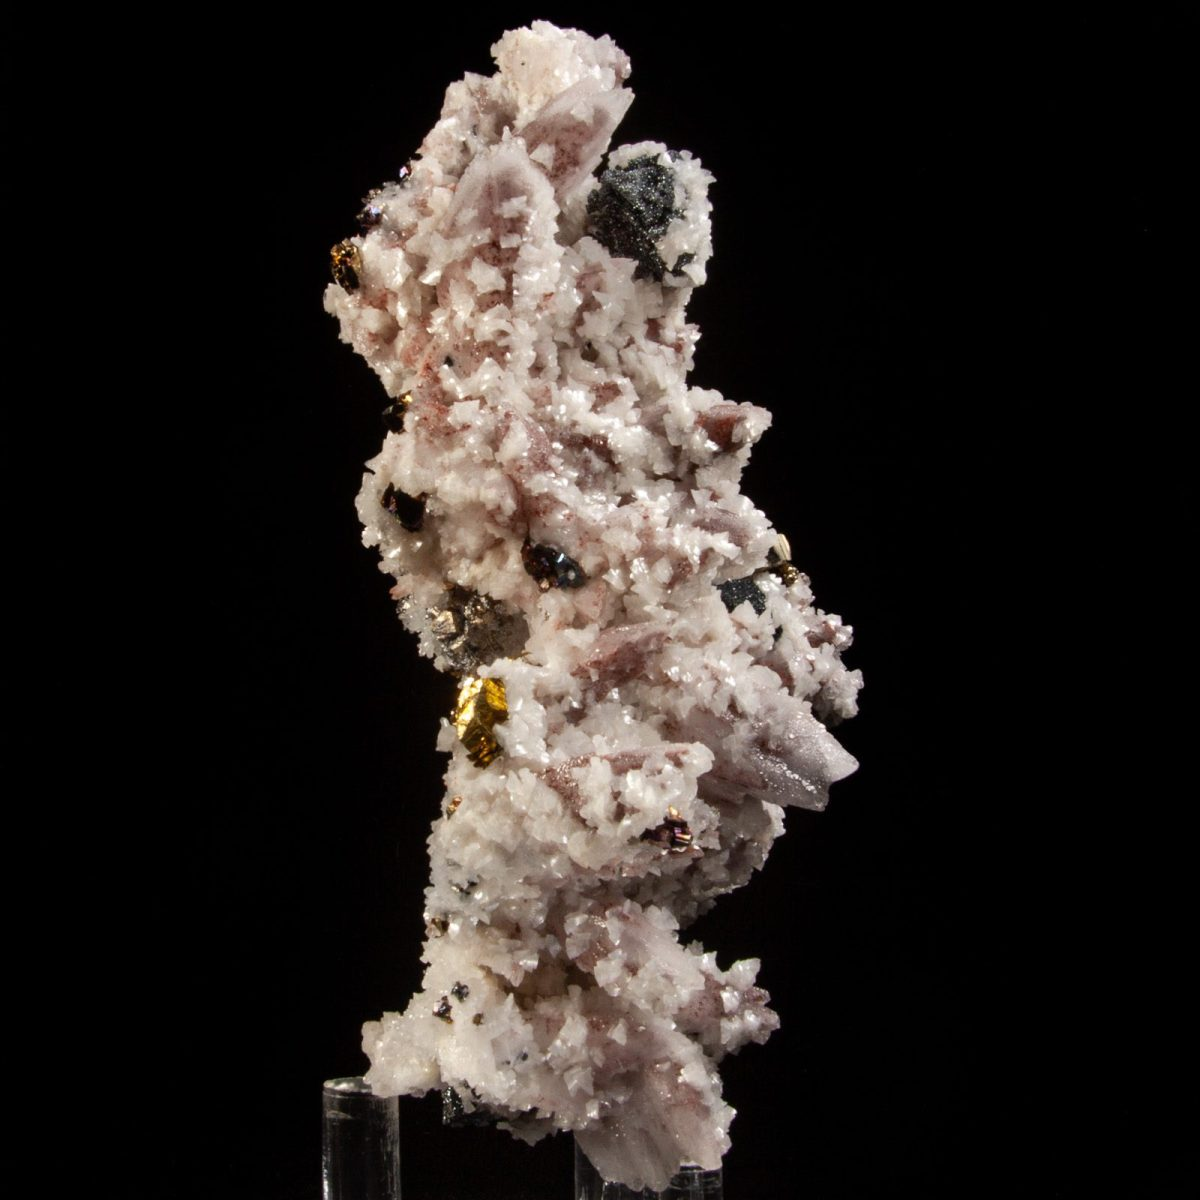 Calcite with Hematite, Dolomite, and Pyrite